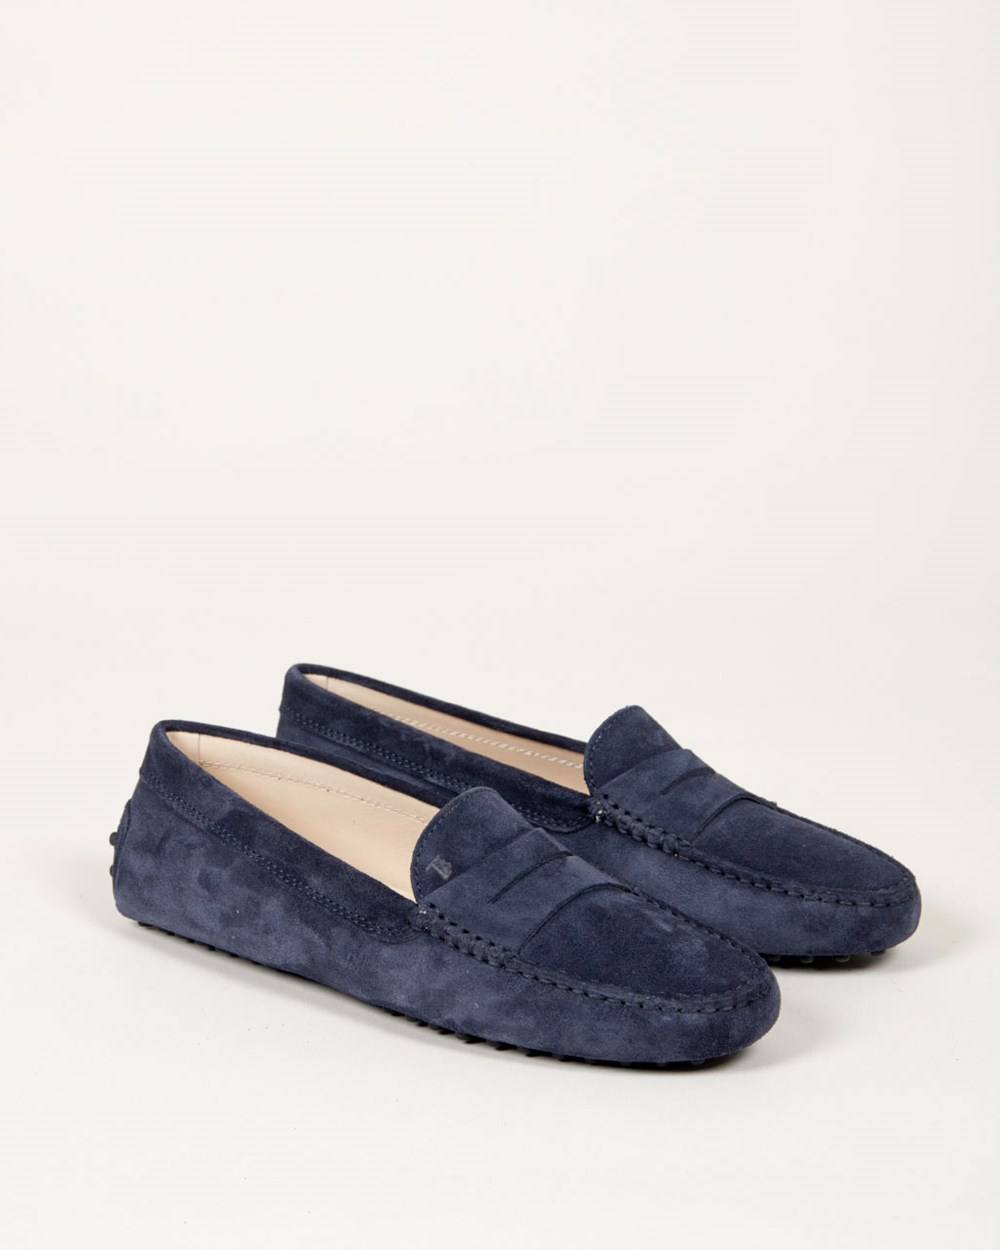 Tods Gommino Suede Navy